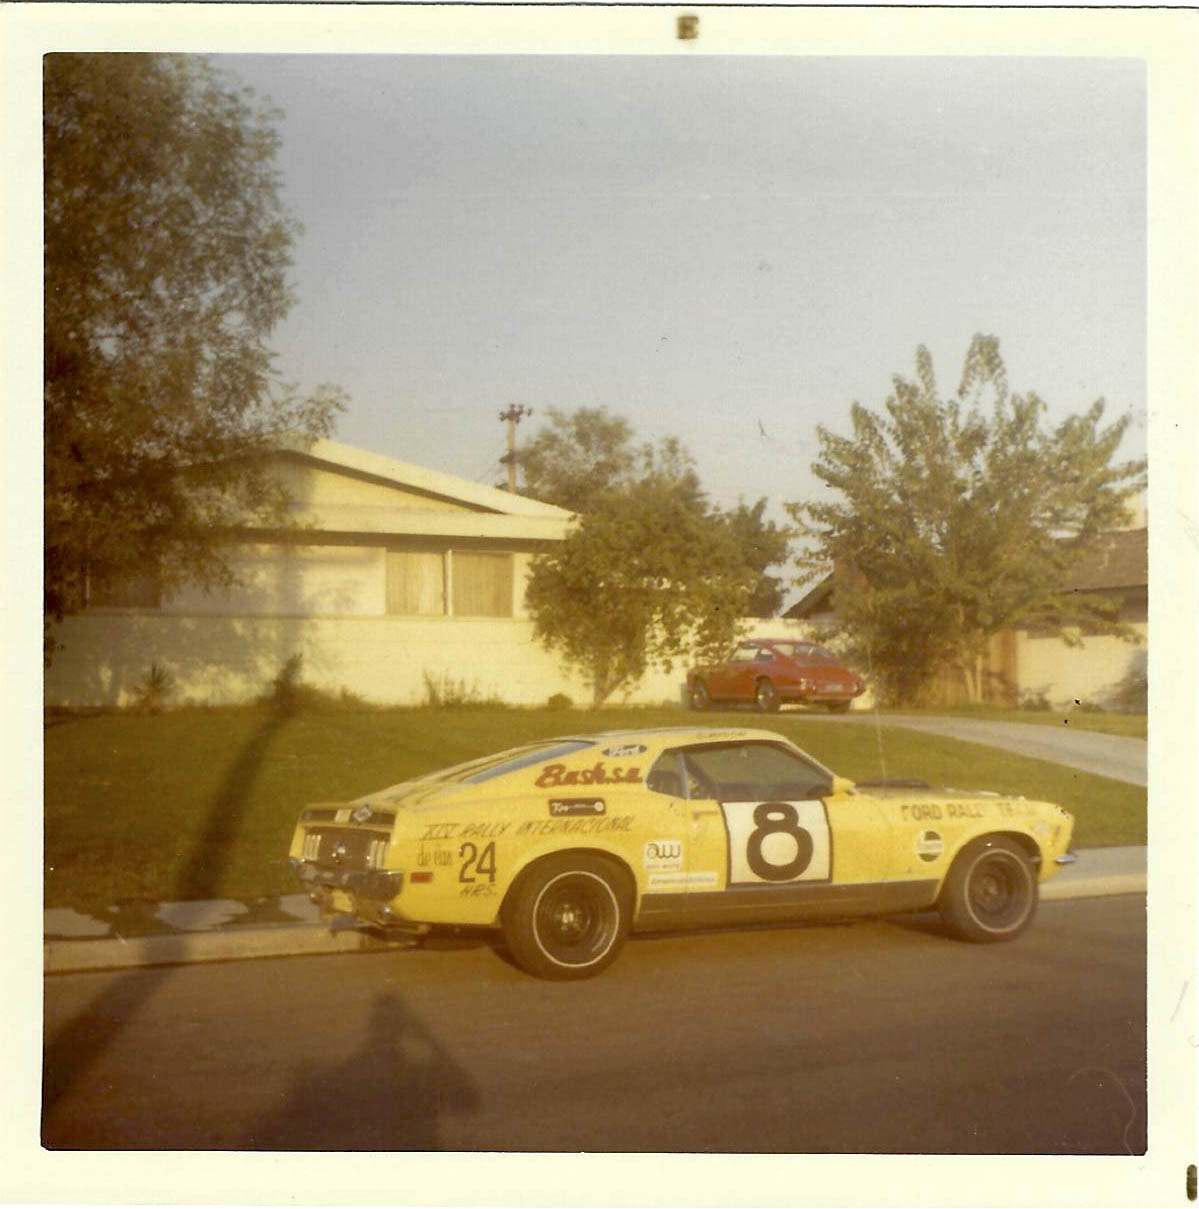 Ken Adams competed for the Ford Rally team at mostly West Coast events in a 1970 Cobra Jet Mach 1.